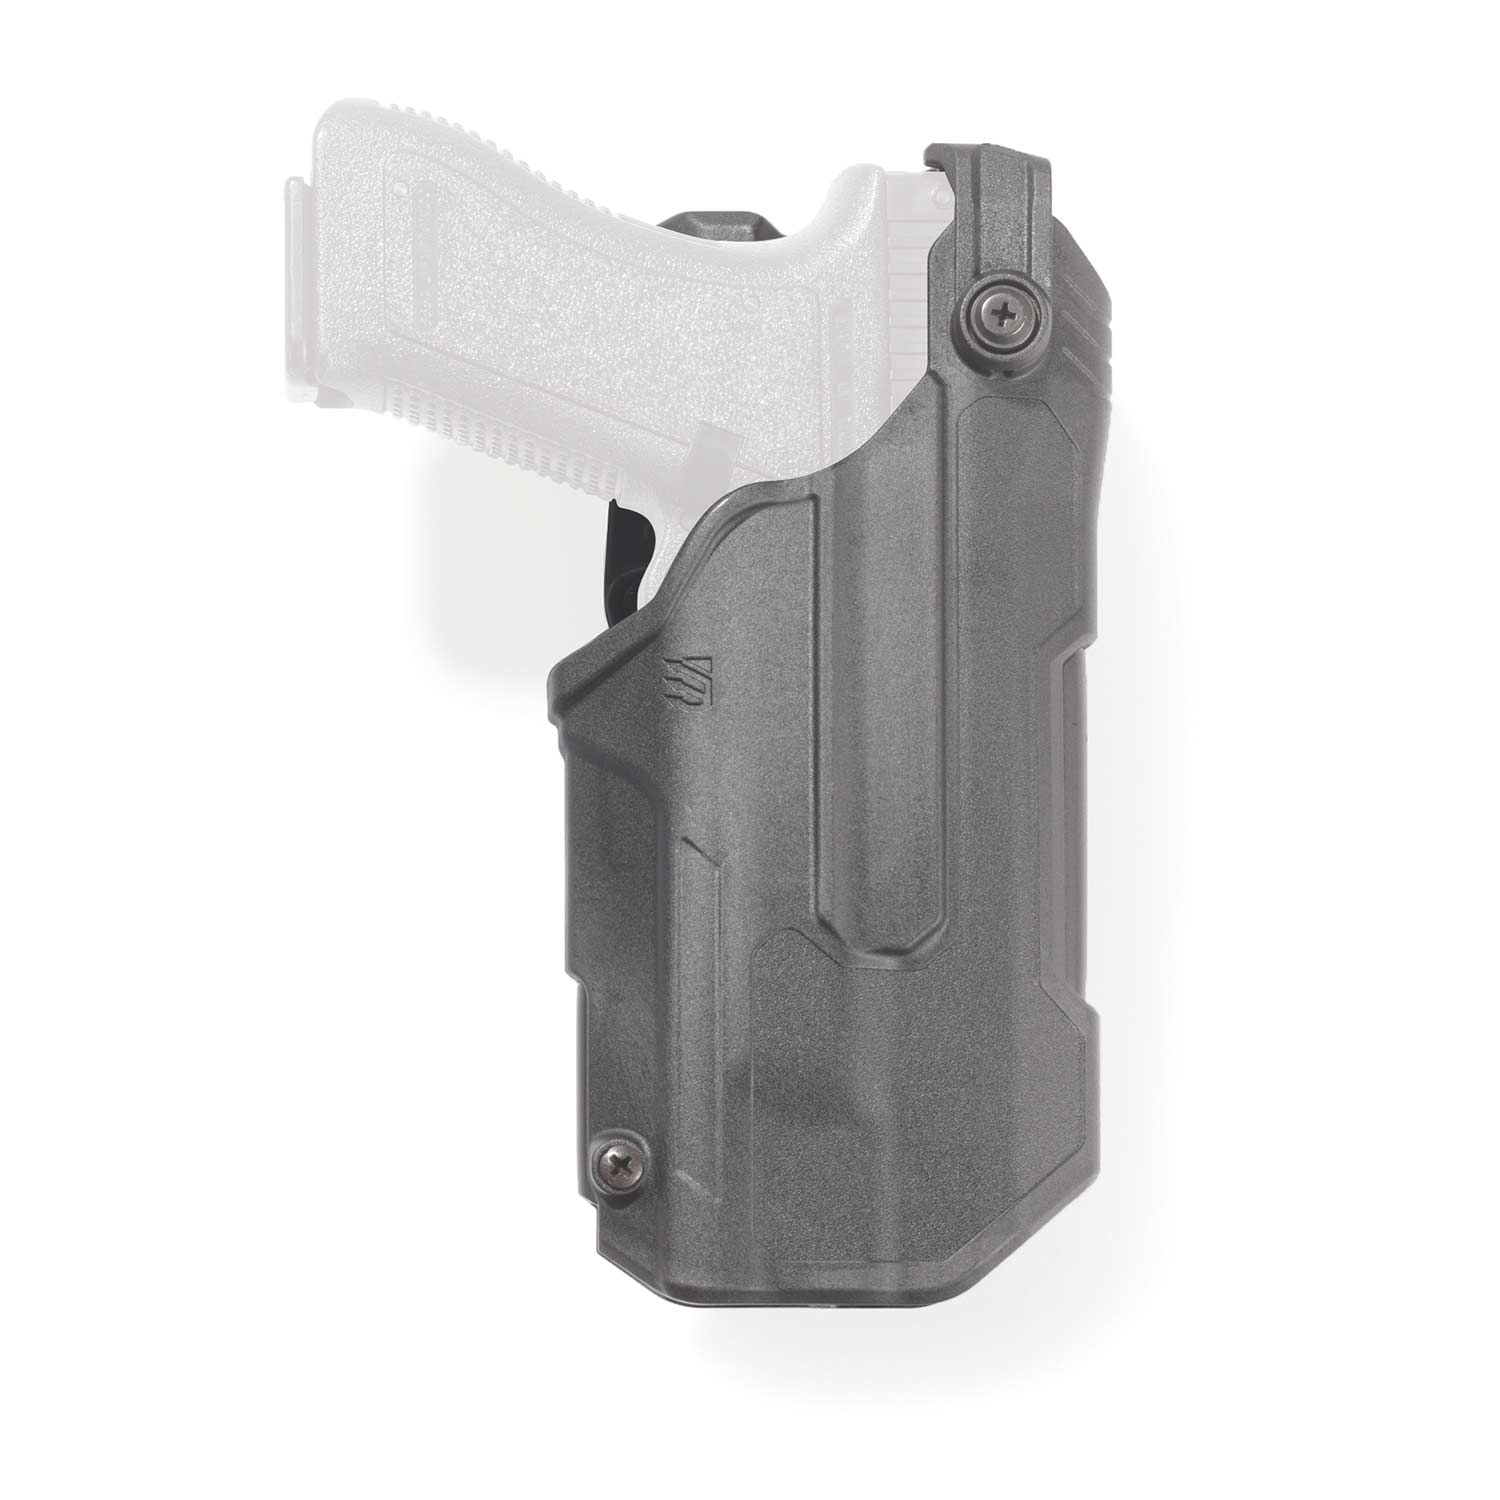 Blackhawk T-Series Level 3 Light Bearing Holster